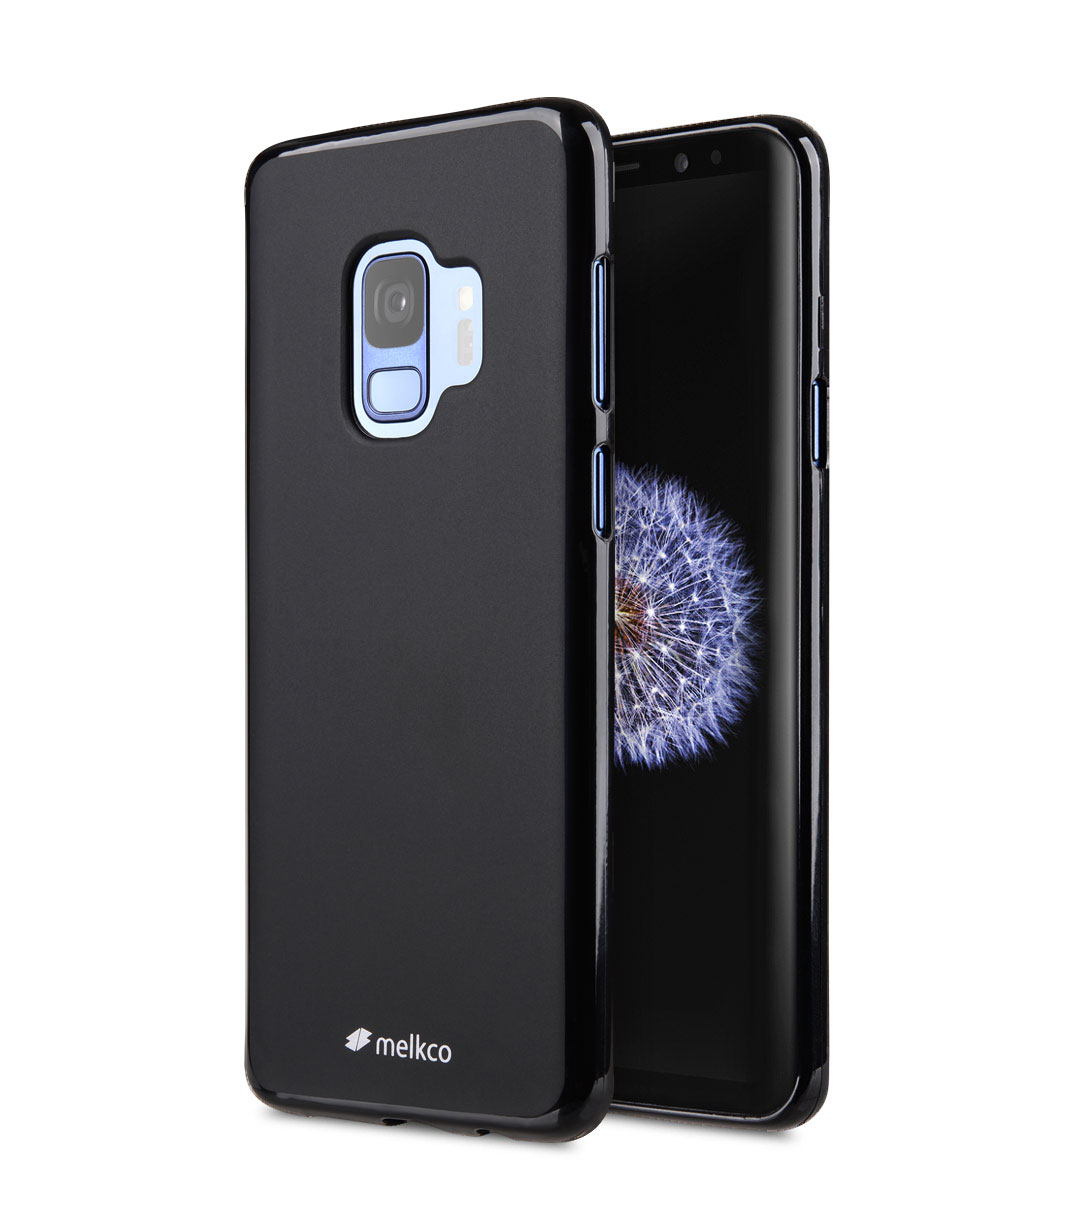 Poly Jacket Tpu Case For Samsung Galaxy S9 Black Mat